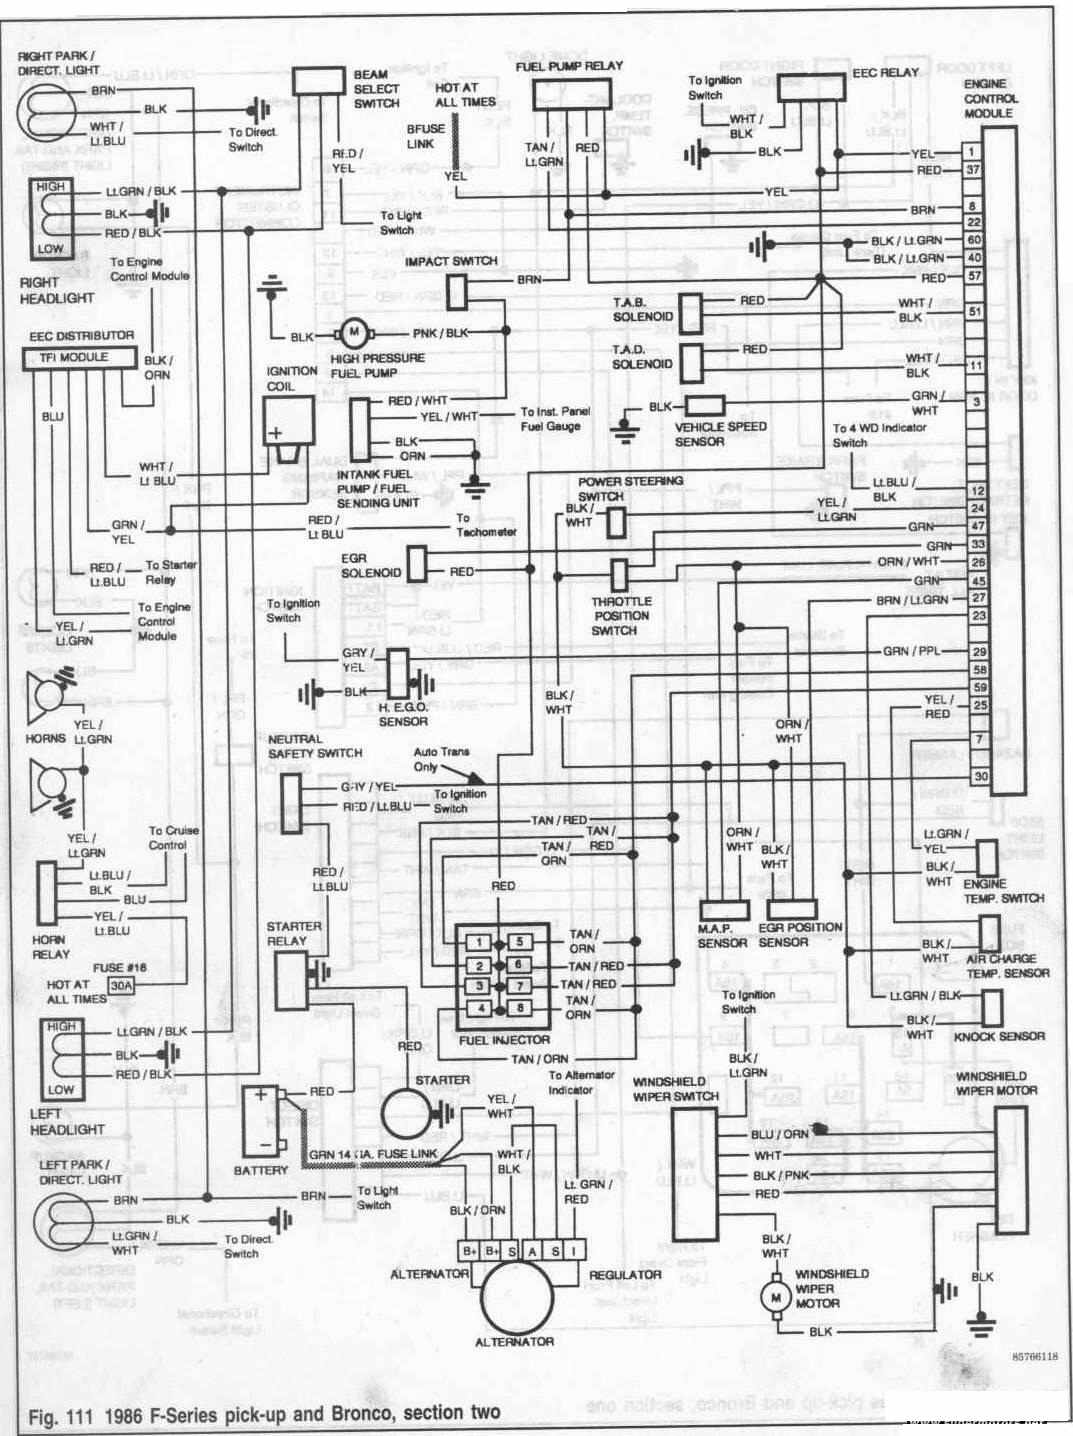 85 Ford Bronco Wiring Diagram | Wiring Diagram  Bronco Alternator Wiring Diagram on 1979 f150 turn signal diagram, 85 bronco ii engine wiring diagrams automotive, 1988 bronco fuel injector wiring diagram, 1977 ford bronco electrical diagram, ford bronco wiring harness diagram, 1969 bronco tail light wiring diagram, 1985 ford bronco ignition diagram,